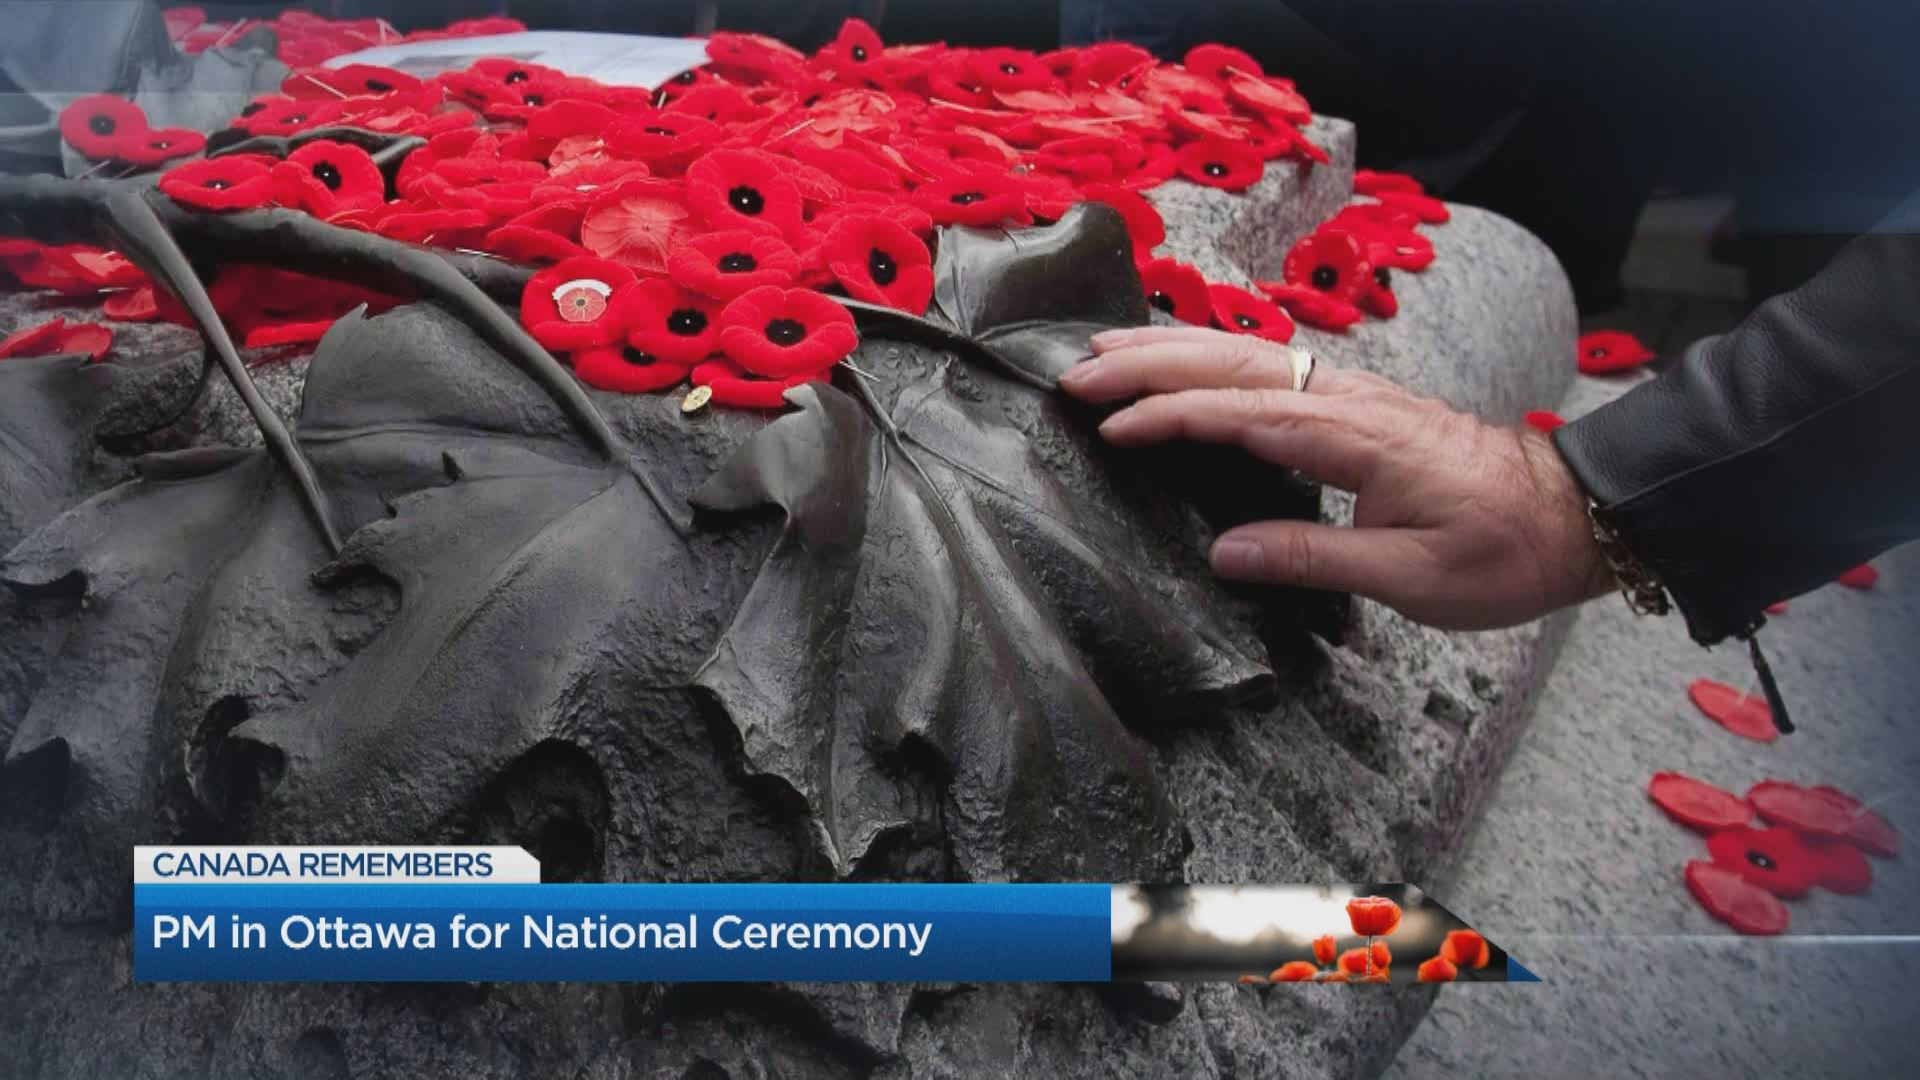 PM in Ottawa for National Ceremony